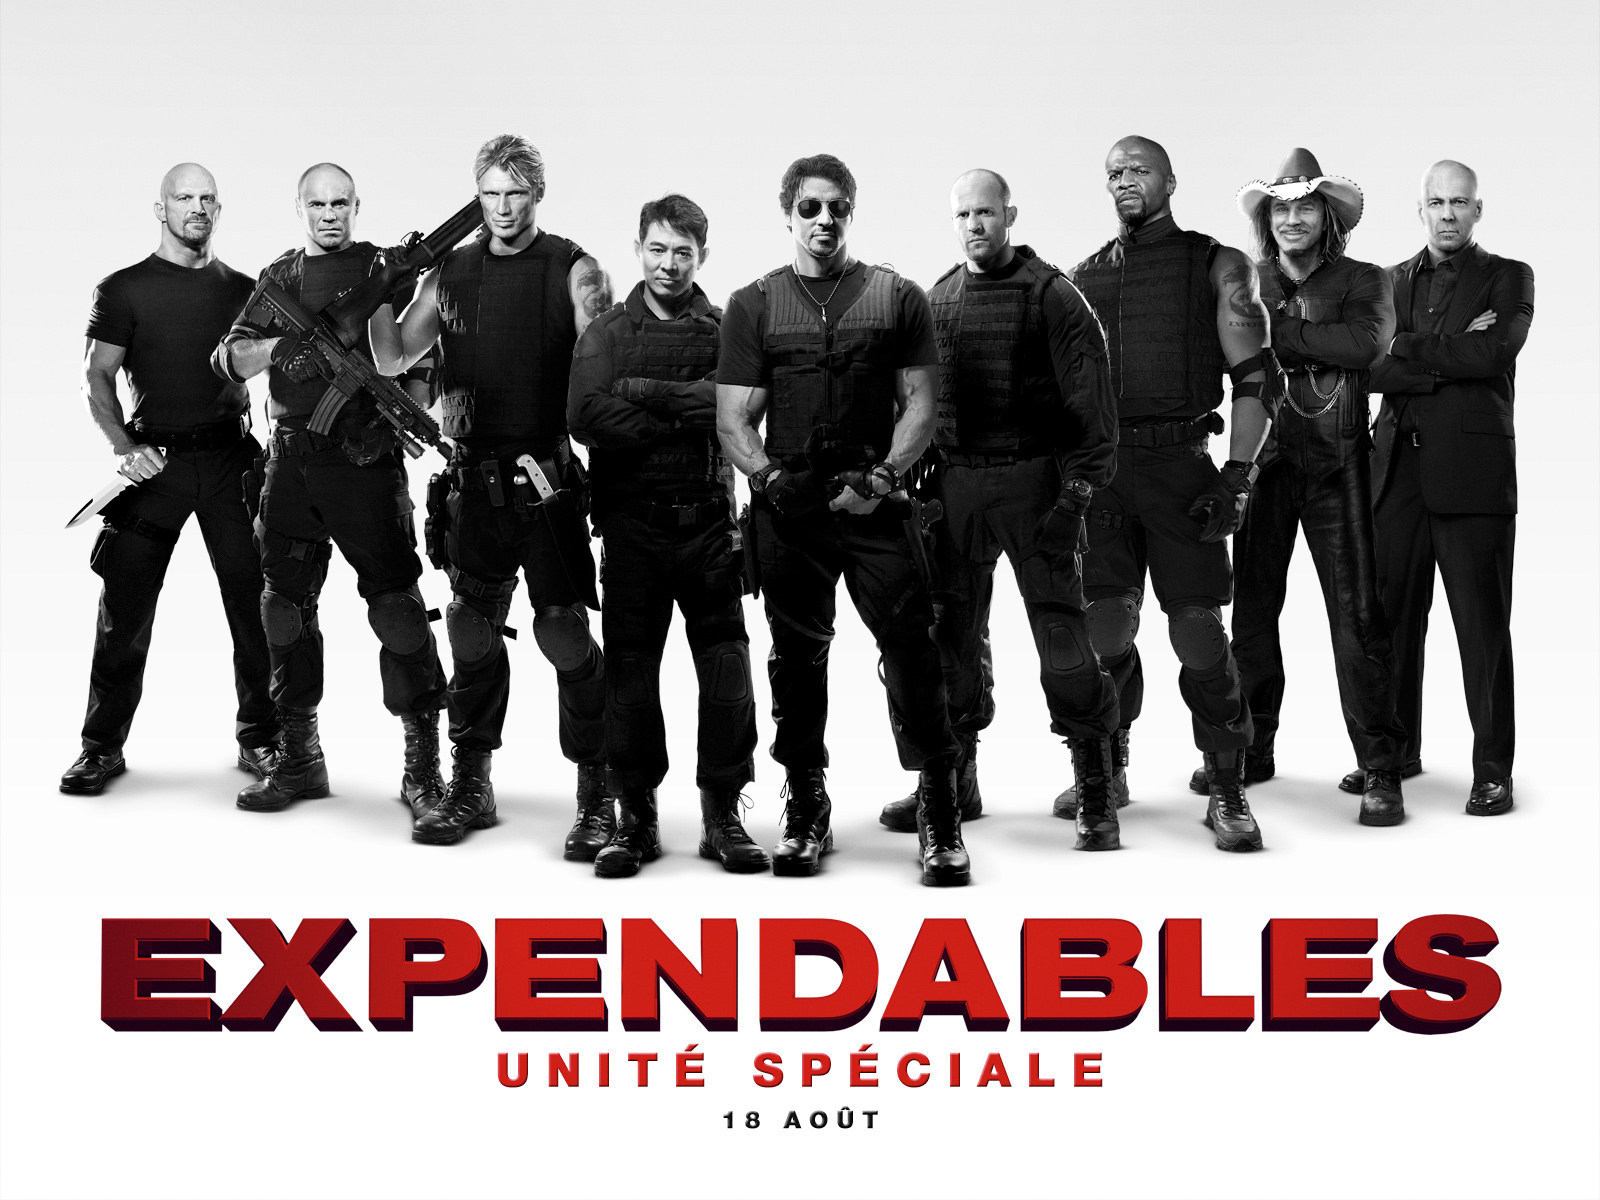 The expendables the expendables